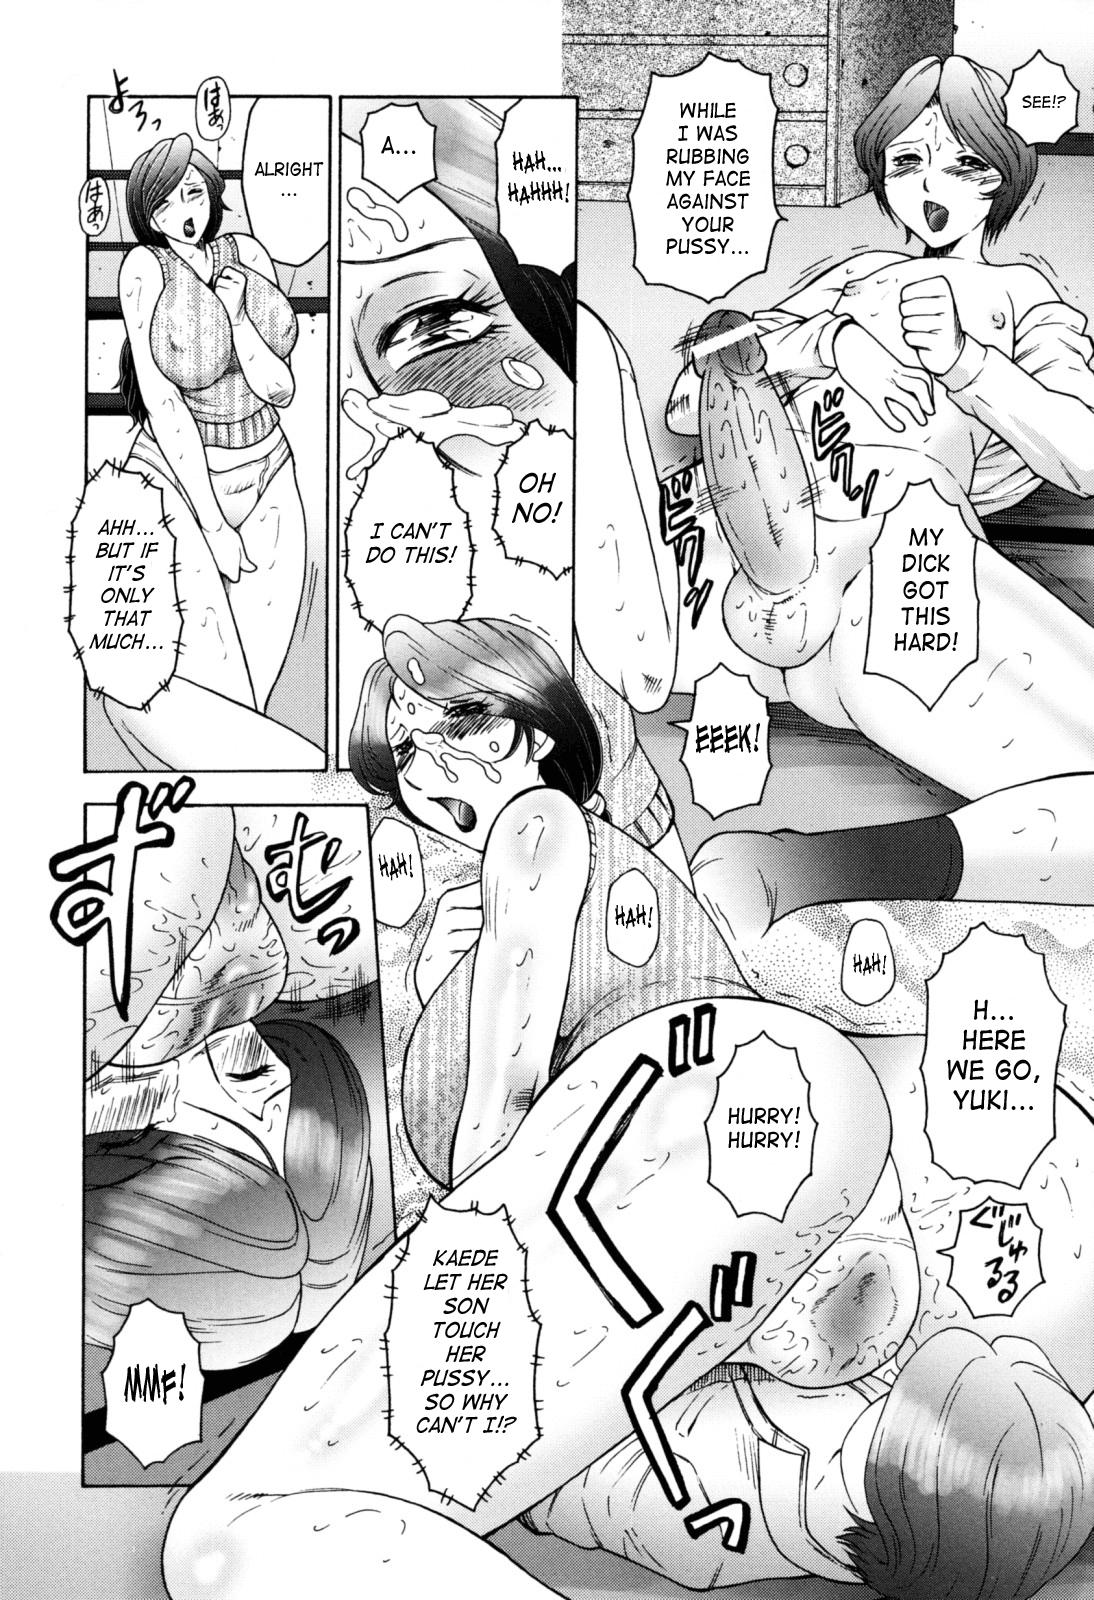 [Fuusen Club] Boshino Toriko - The Captive of Mother and the Son | Enslaved Mother and Son Ch. 1-5 [English] [SaHa] 49